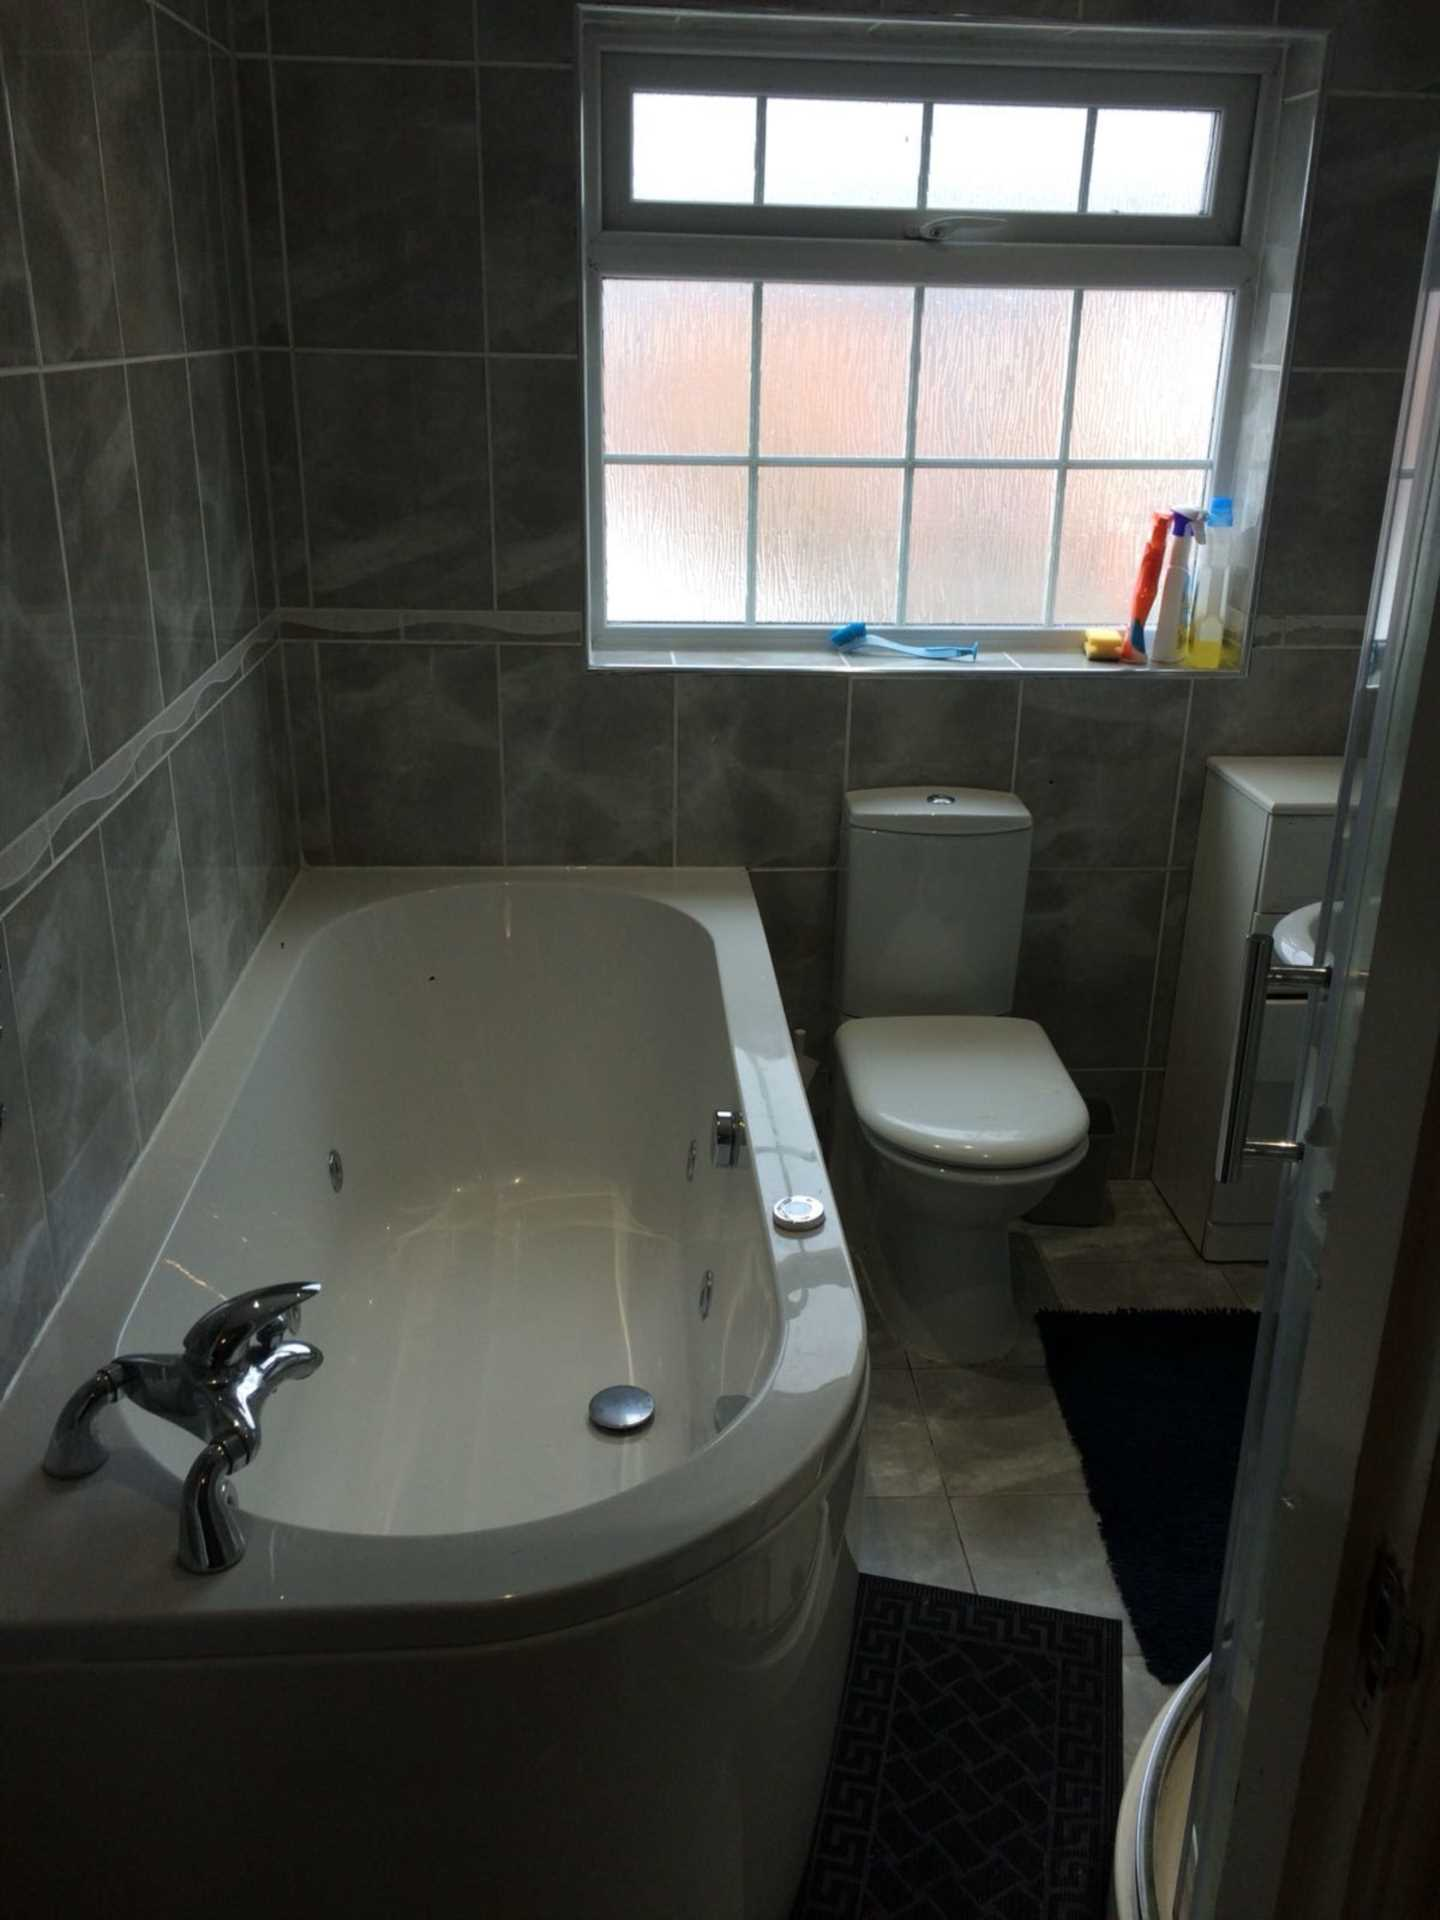 Room 4, Queensland Avenue - 5 bedroom 2 bathroom student home fully furnished, WIFI & bills included - NO FEES, Image 13